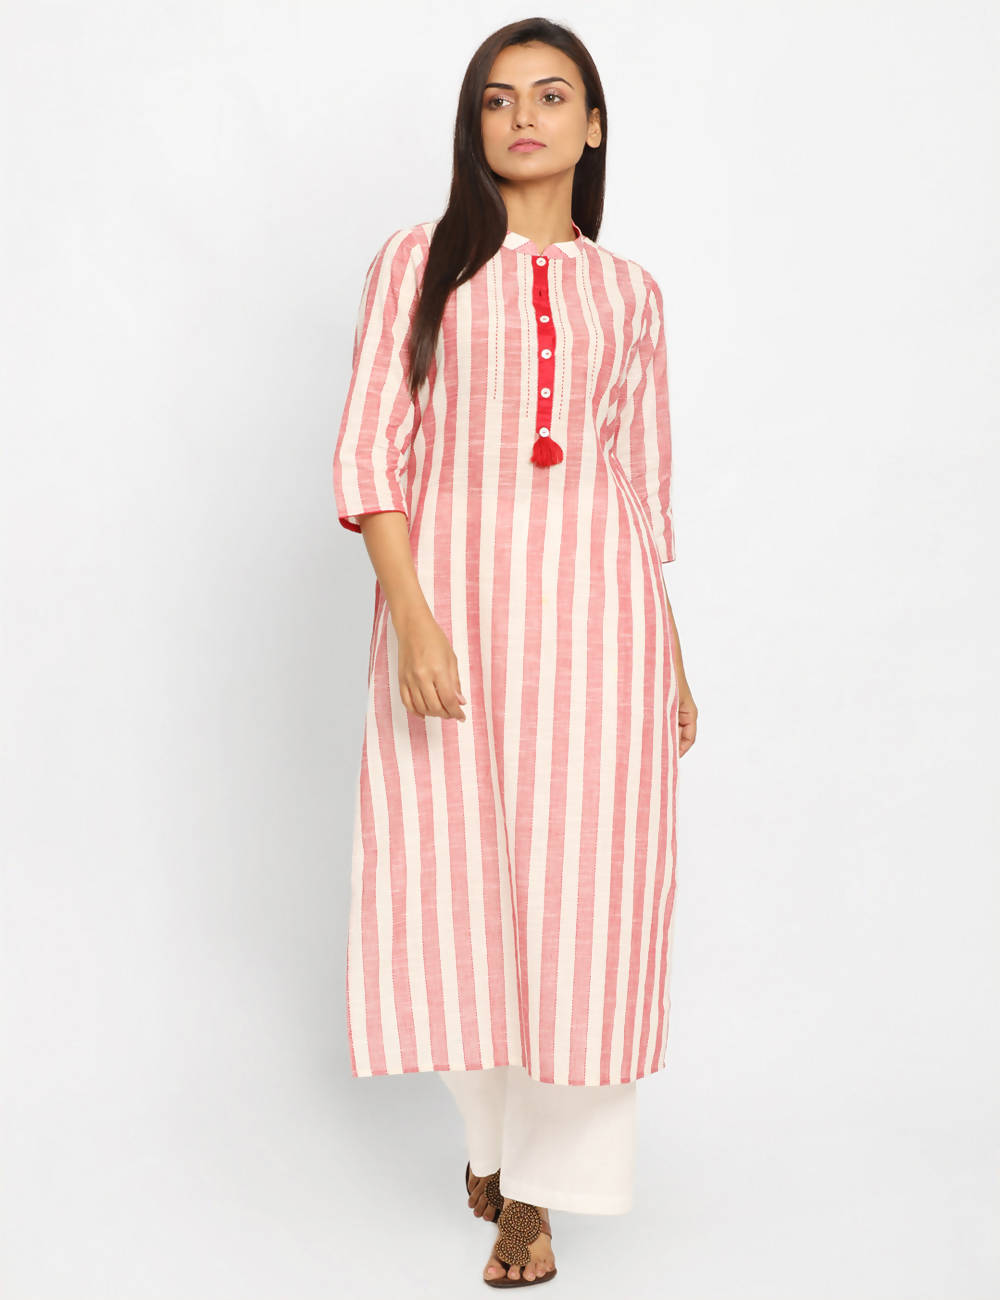 red white striped Handwoven Cotton Kurta